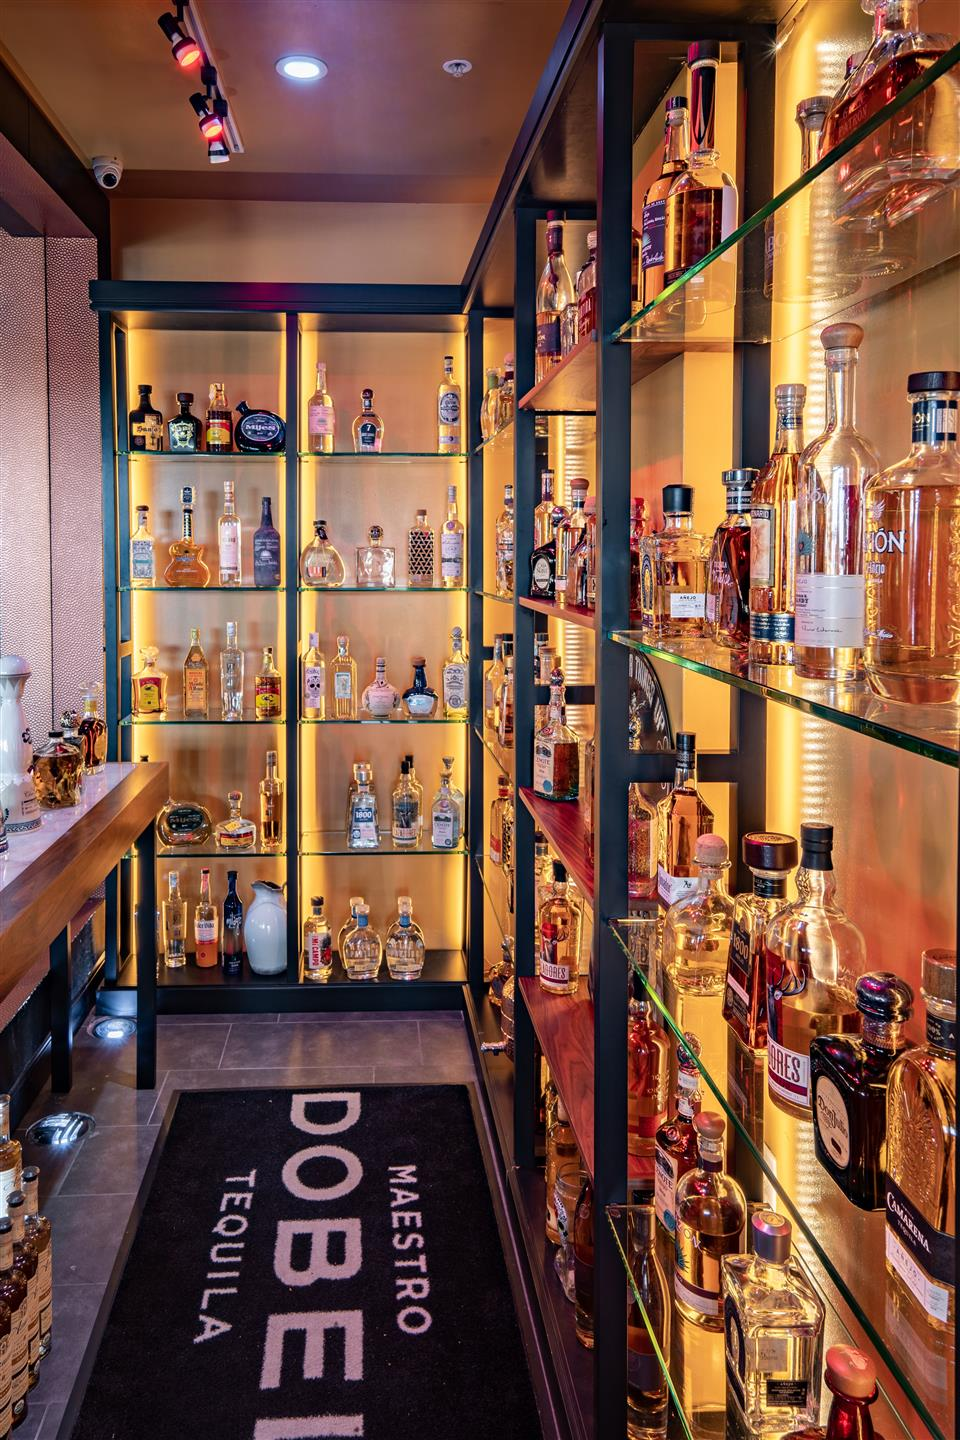 Tequila cellar, shelves with alcohol bottles